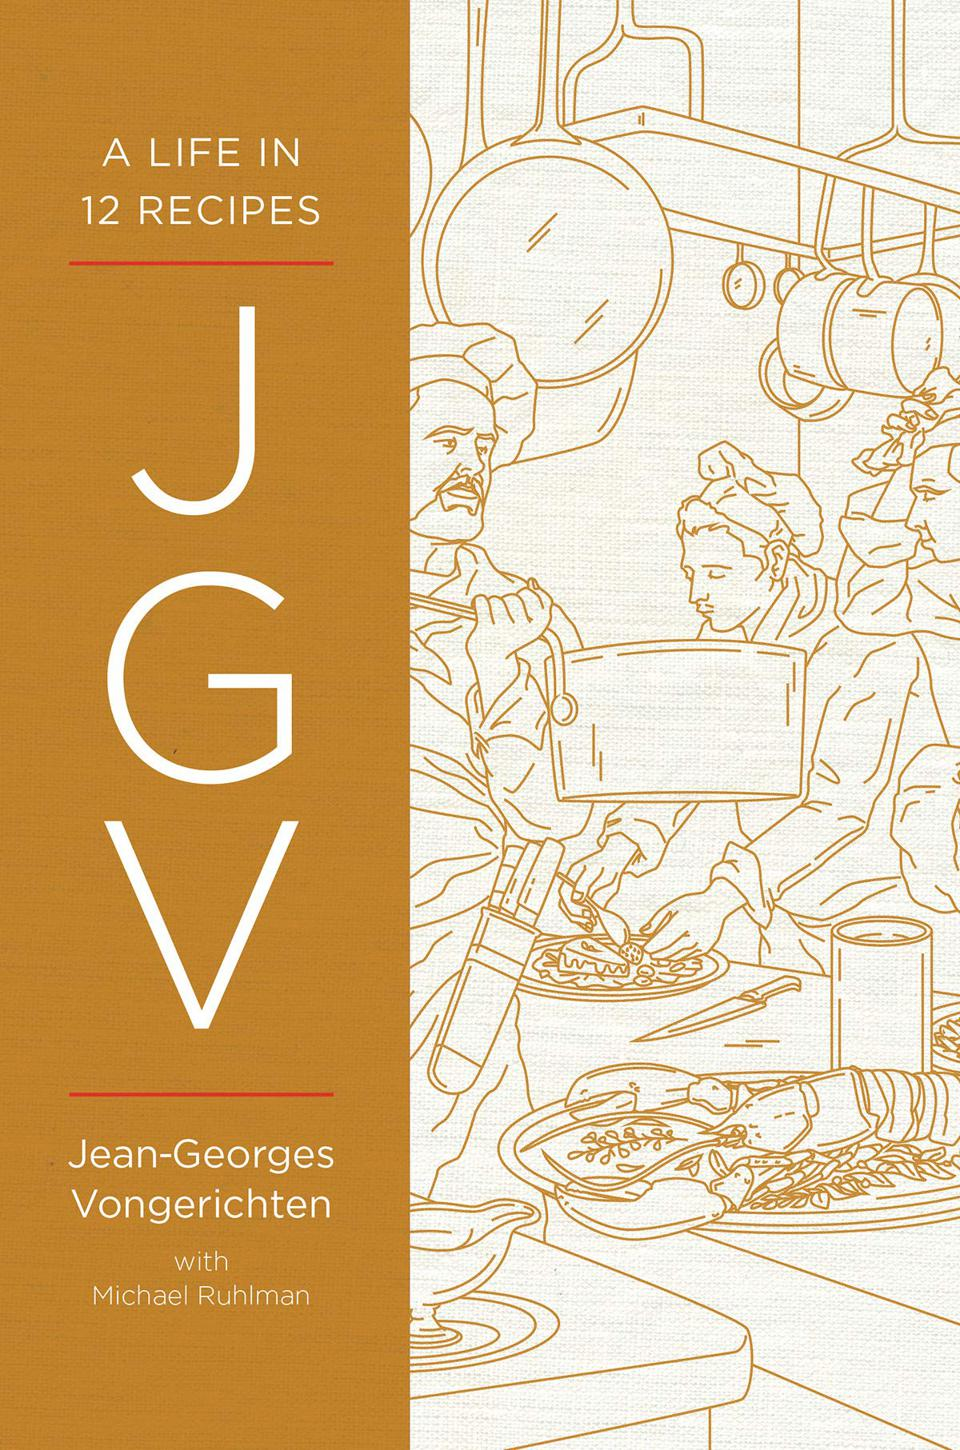 JGV_A Life in 12 Recipes